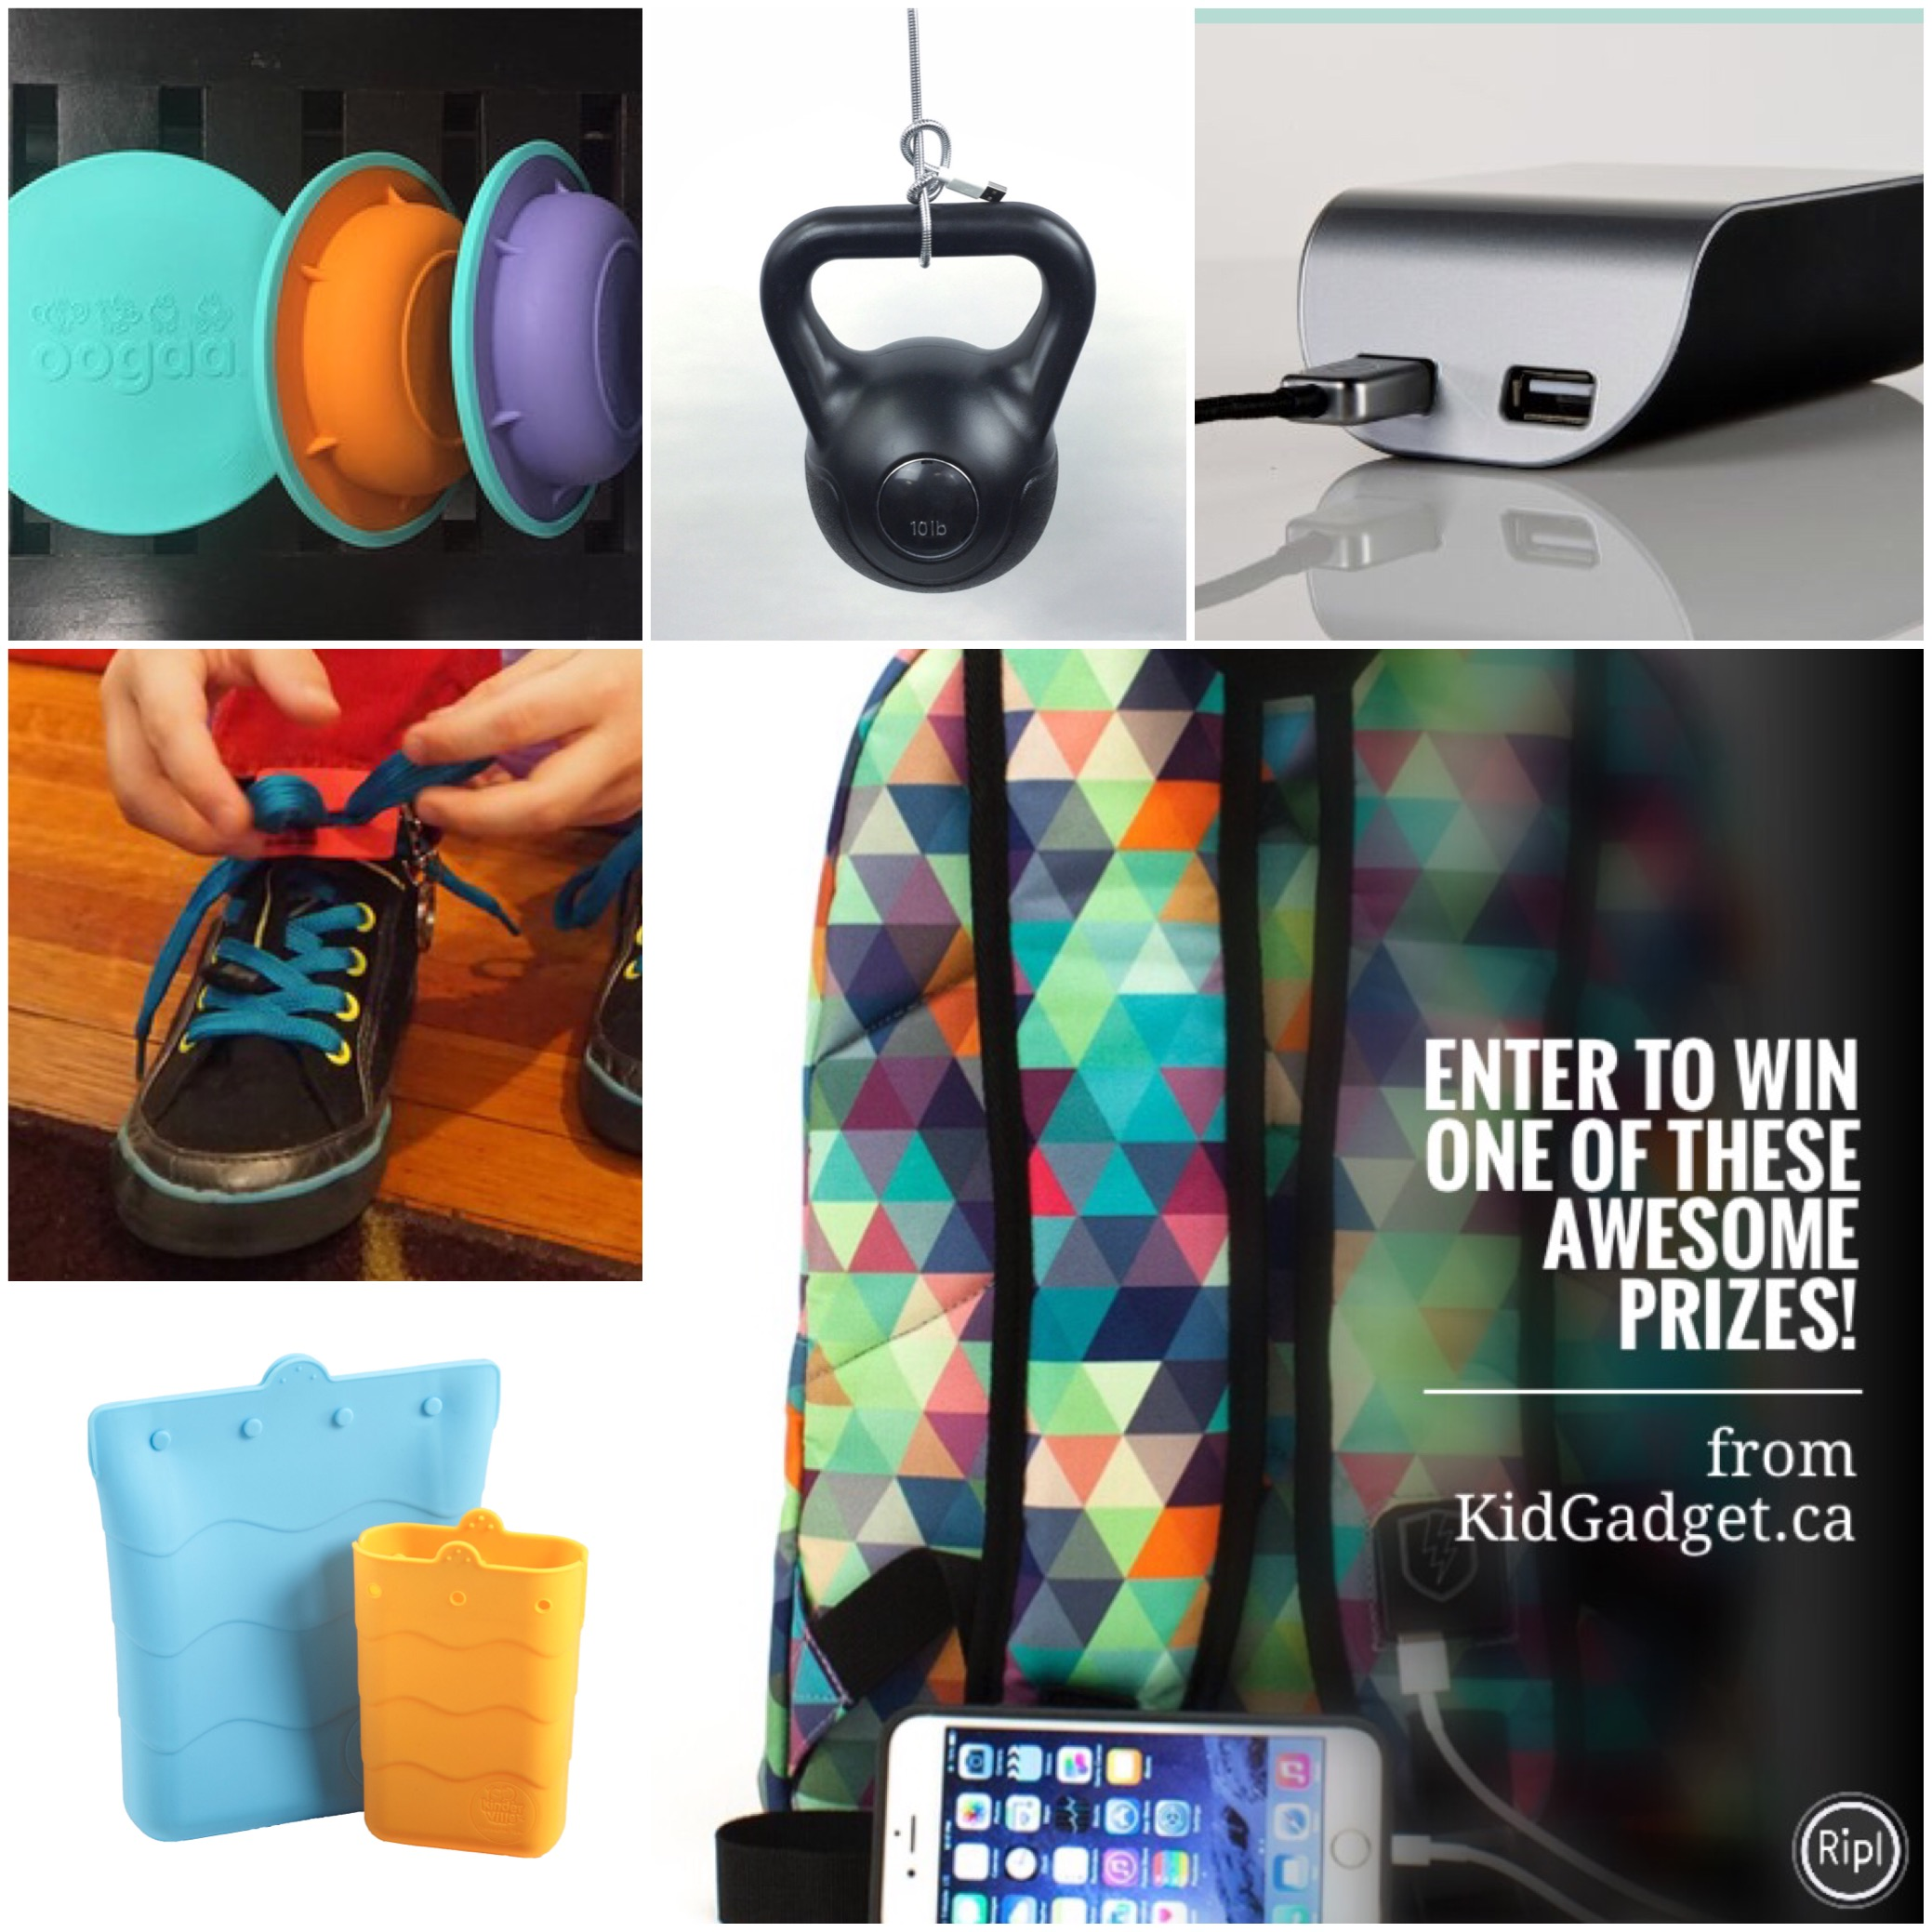 Win $250 Worth Of Prizes From KidGadget